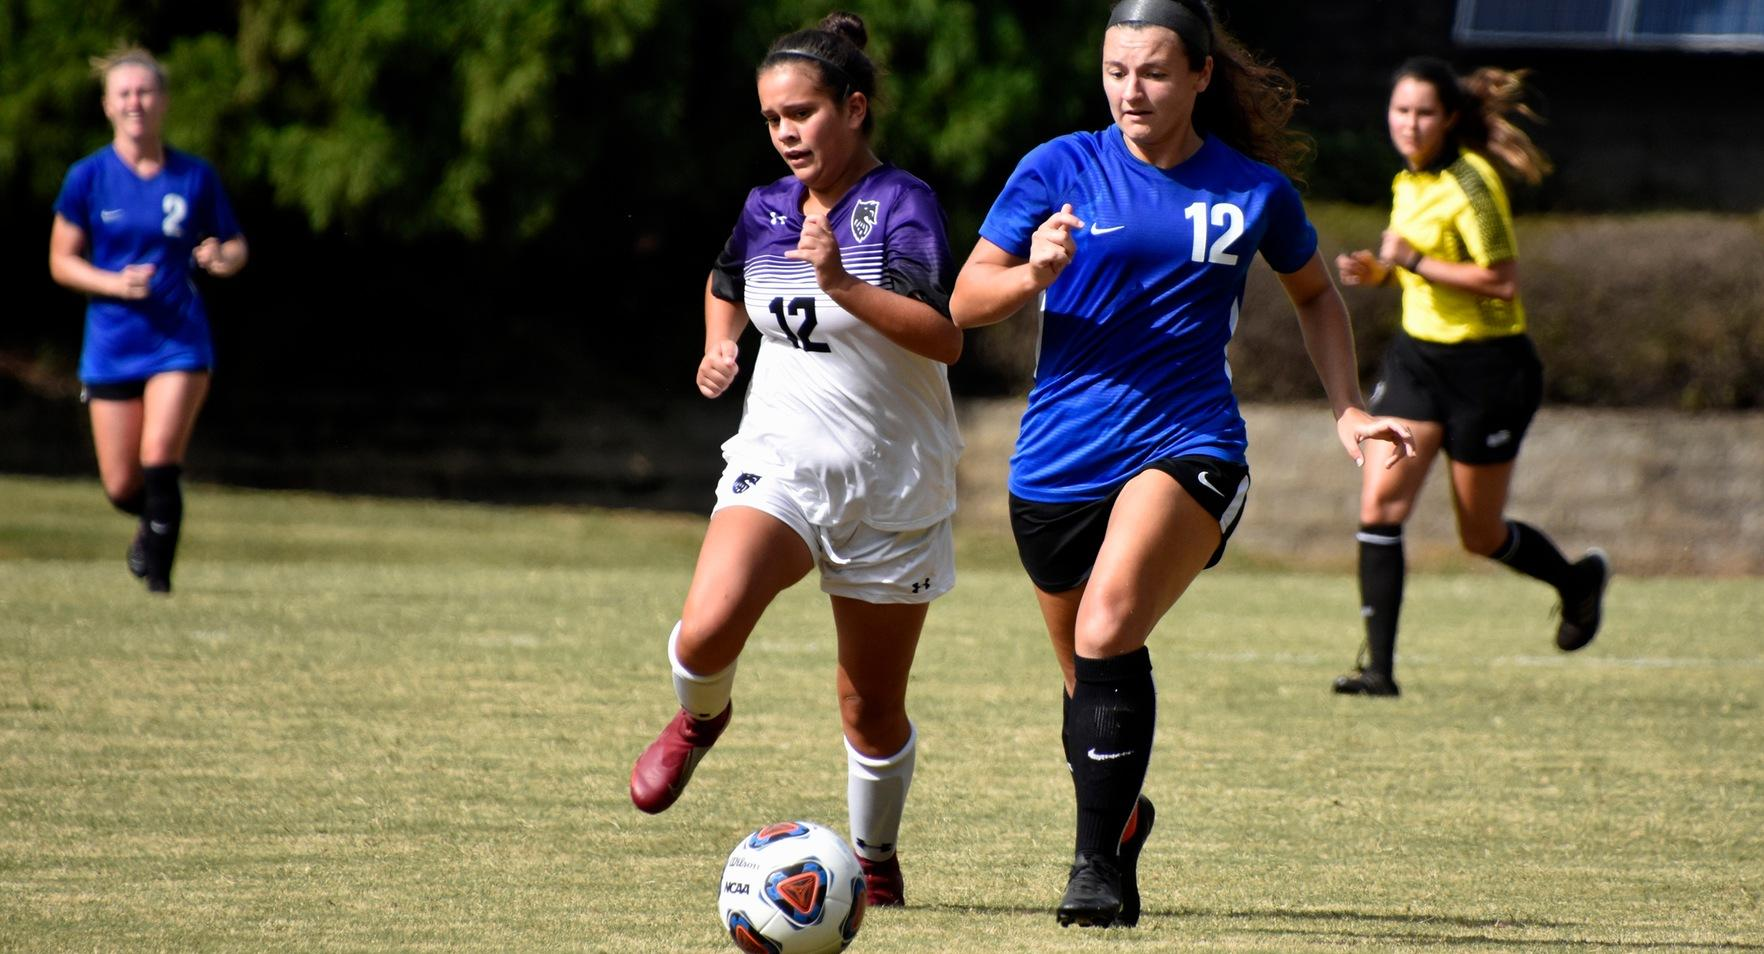 Caroline David & Megan Shina Score, Defense Shines in Victory Over Huntingdon